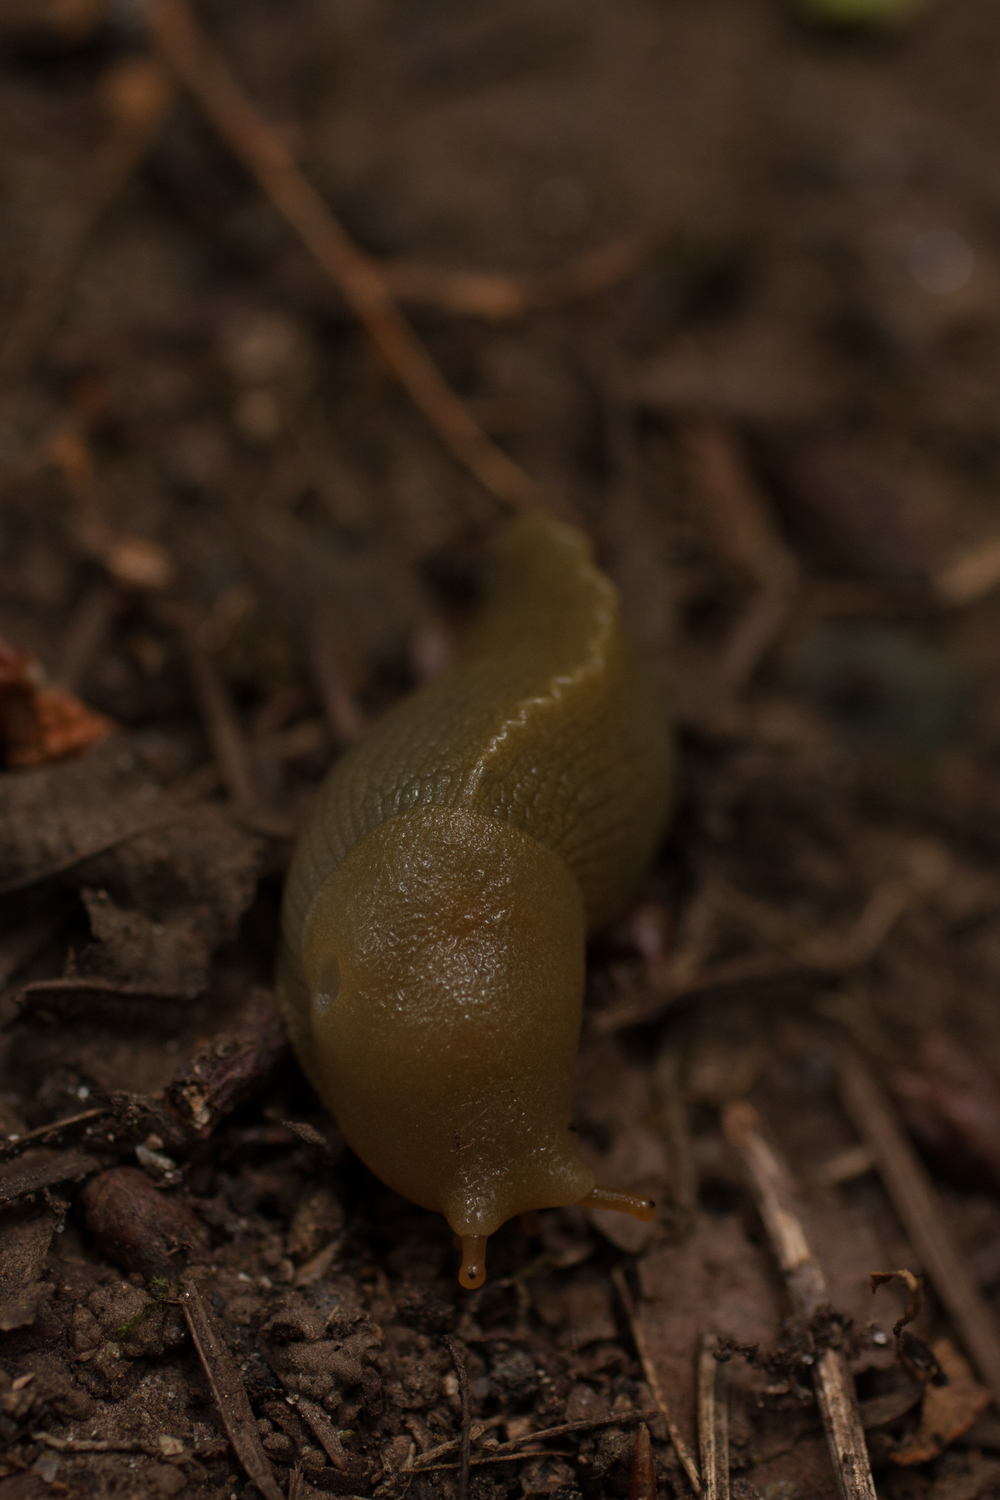 There were also many slugs.